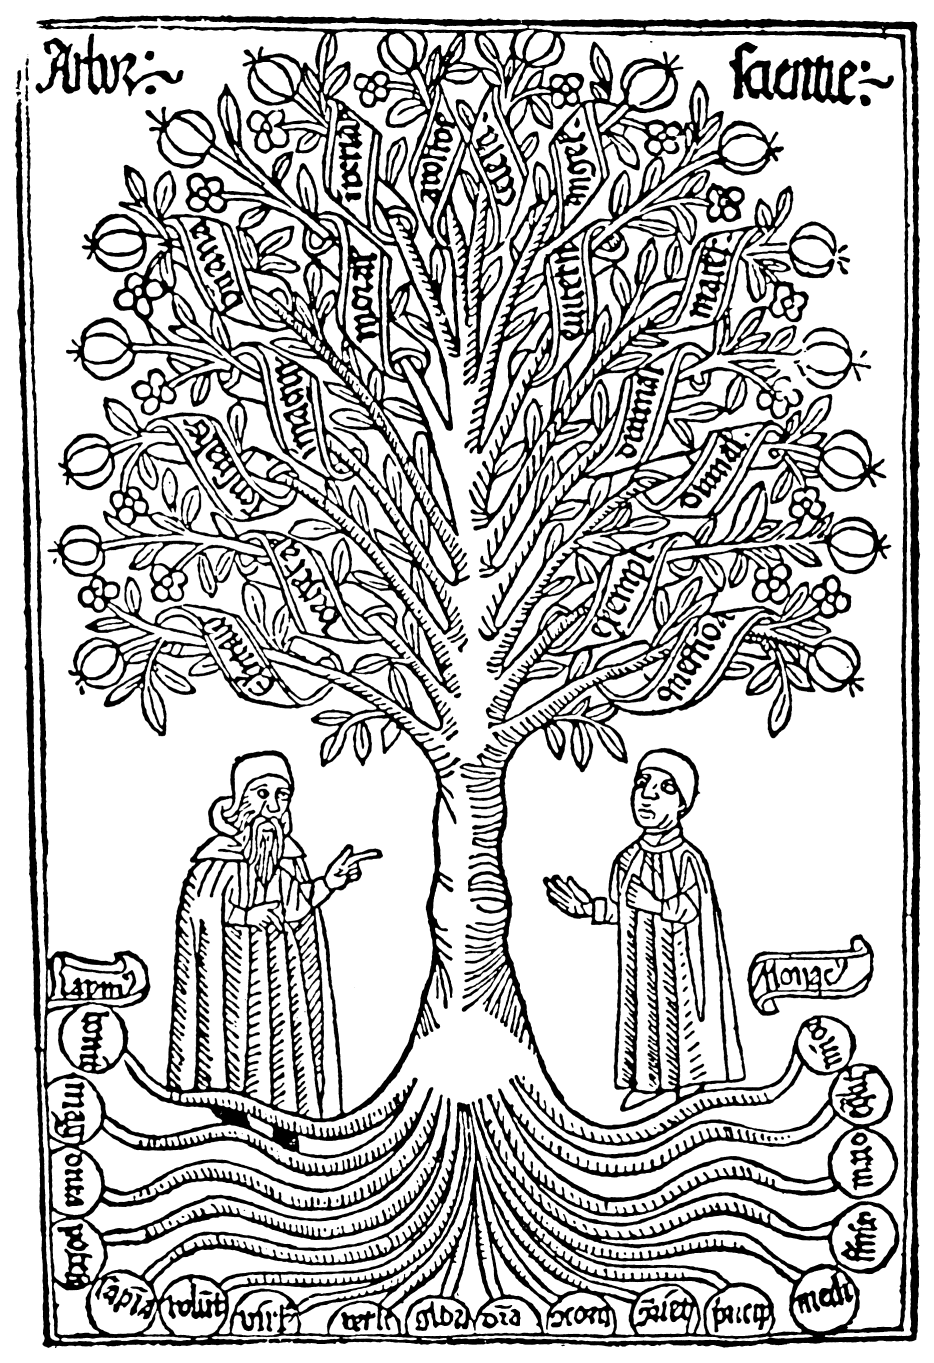 Arbor Scientiae, late thirteenth century, Ramon Llull. [via]